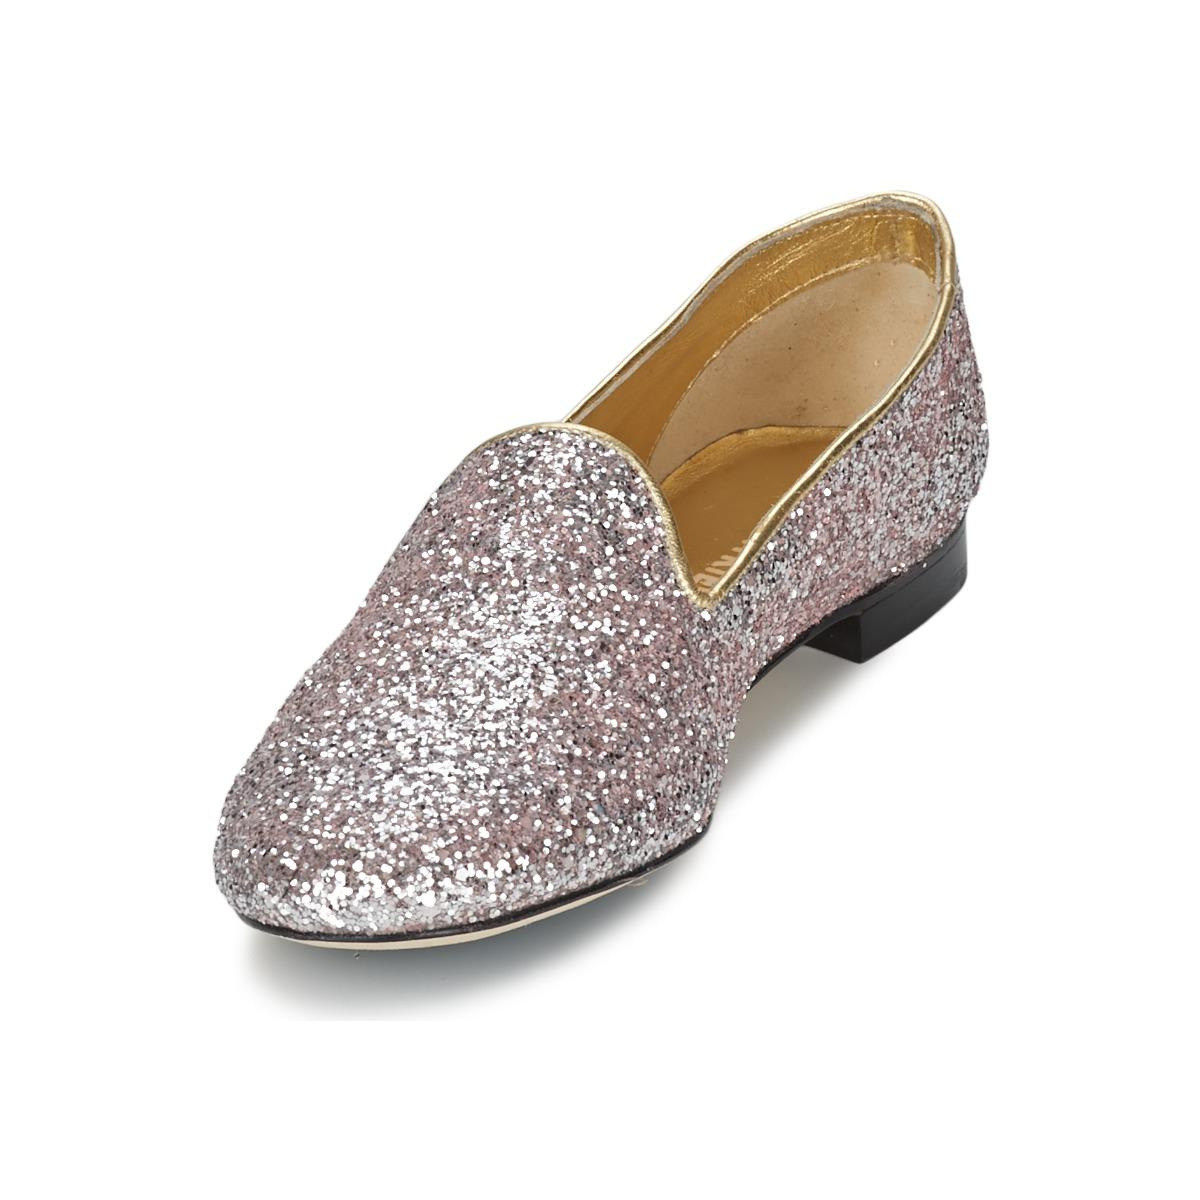 Outlet Store Locations Official Sale Online Sonia by Sonia Rykiel 687811 women's Loafers / Casual Shoes in Clearance Official Site Cheap Sale Low Price Fee Shipping nSWvTz71